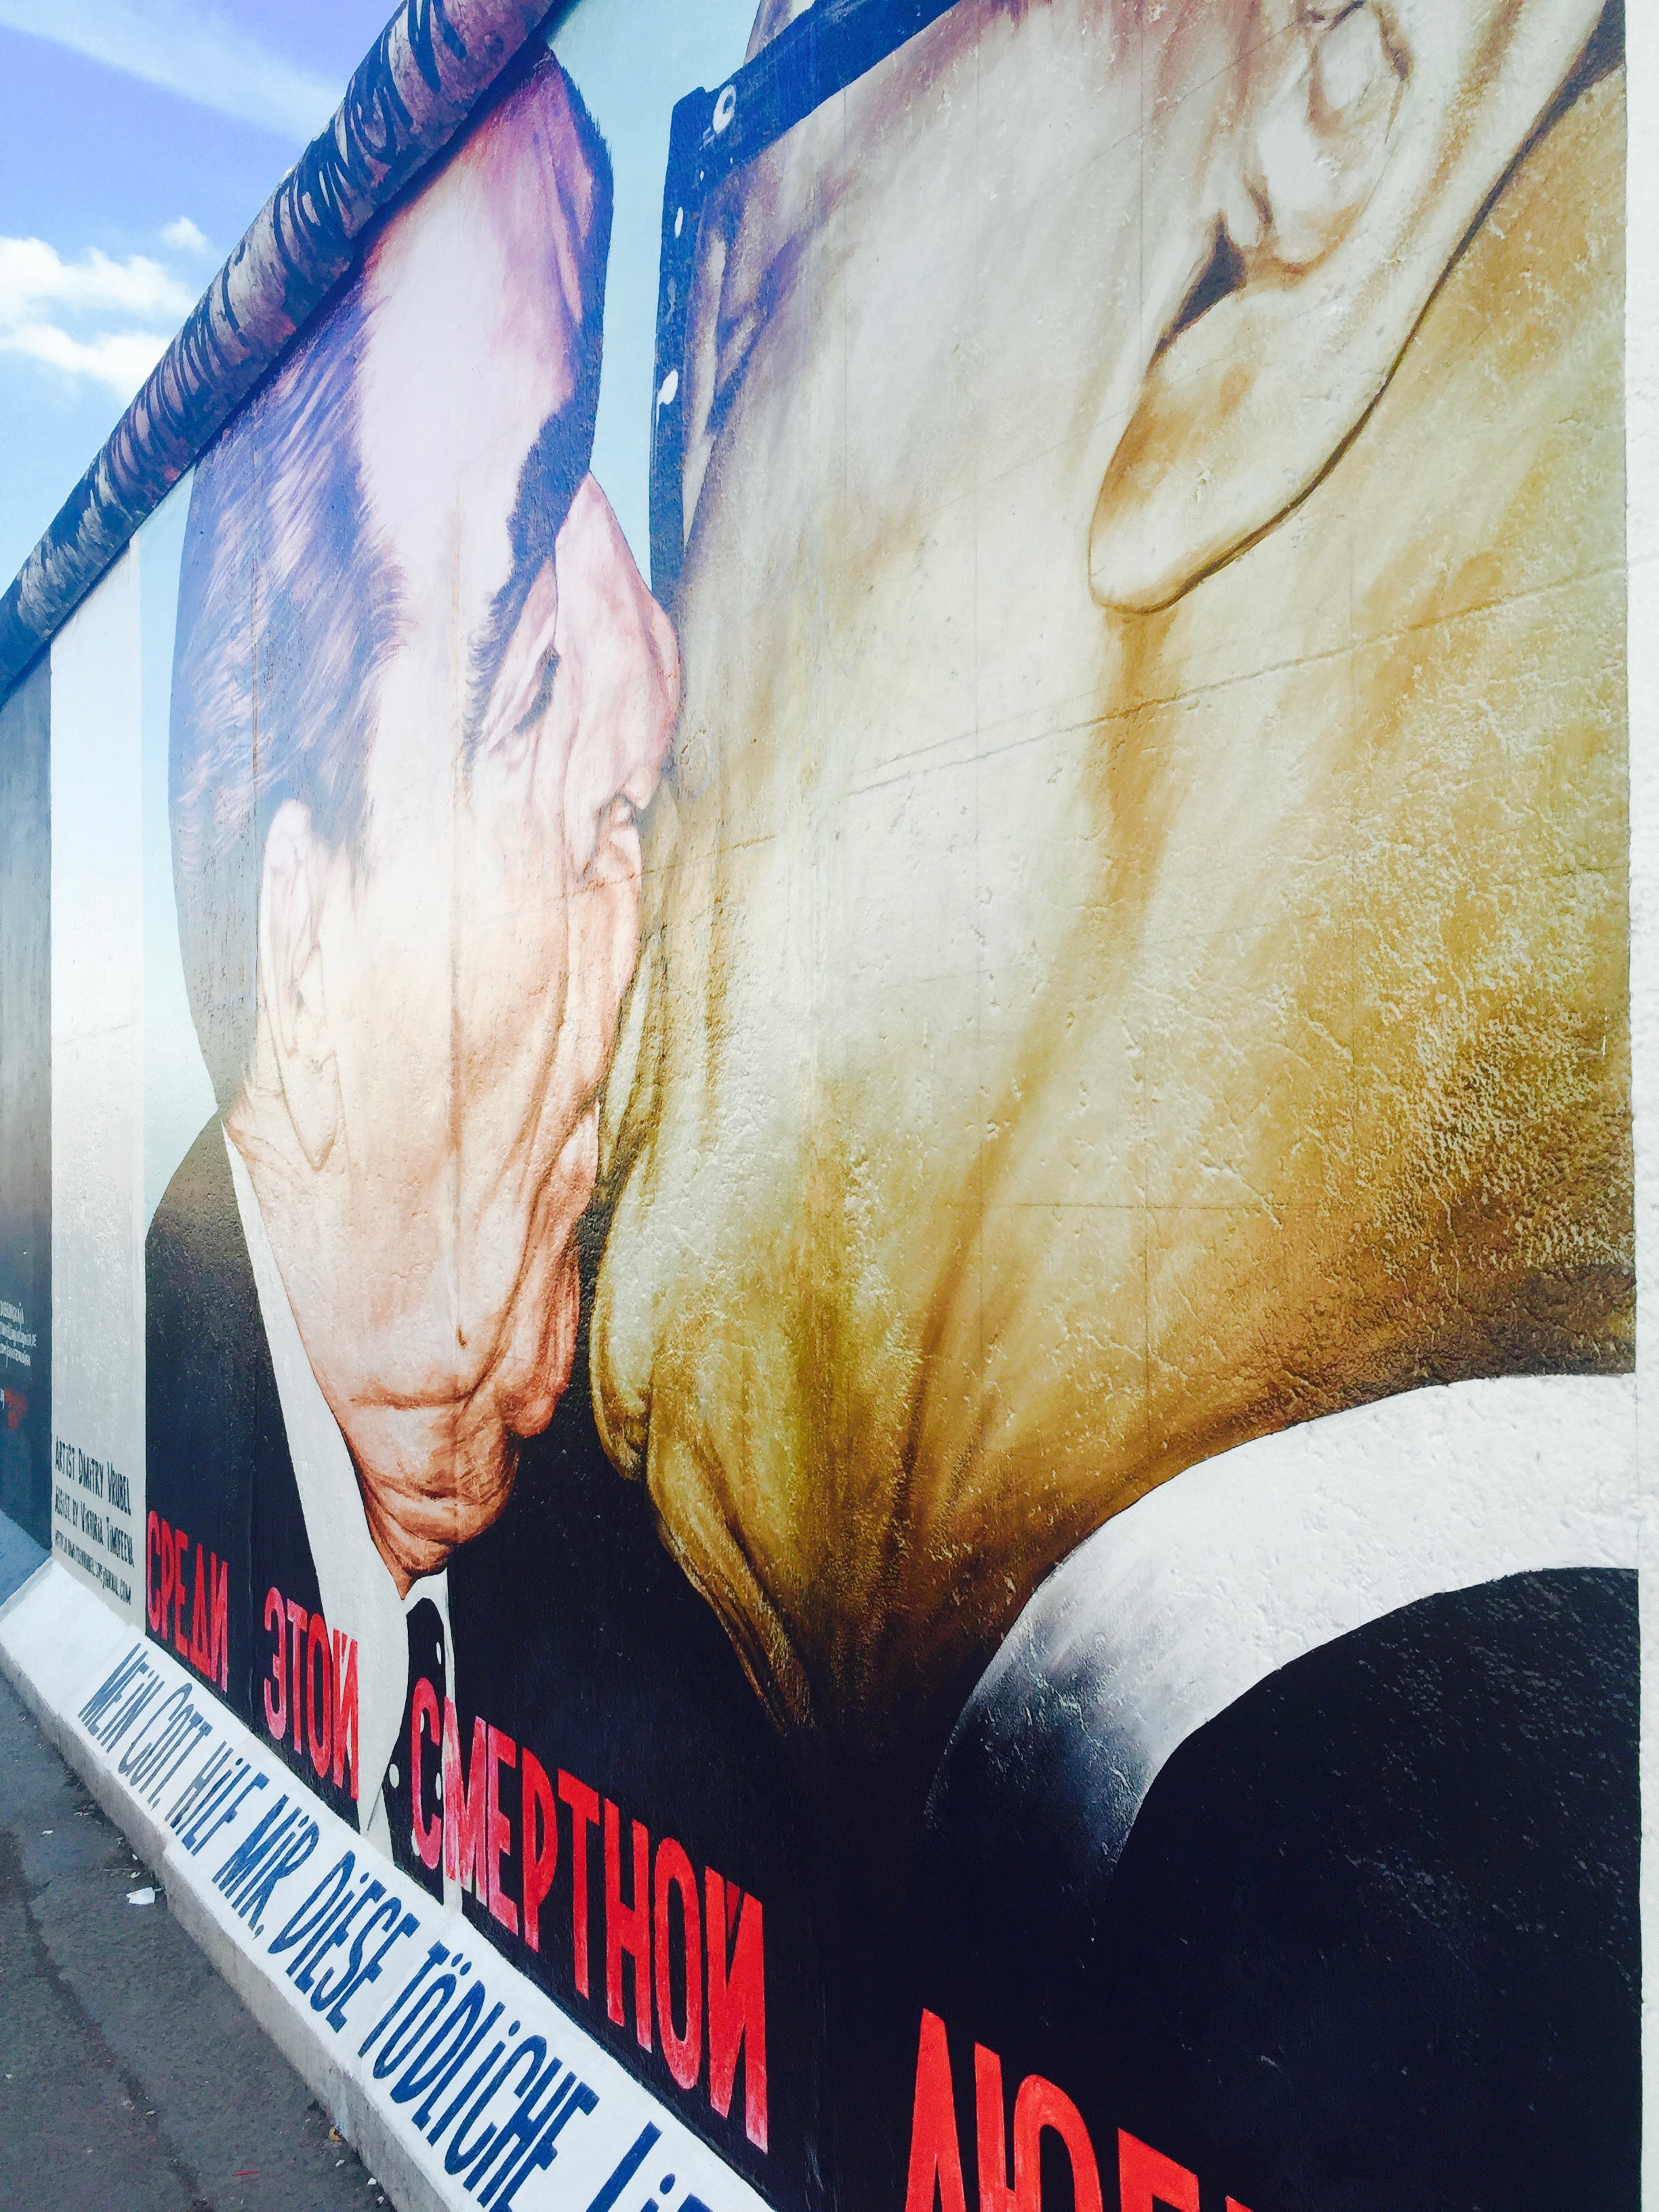 Visit the East Side Gallery of the Berlin Wall